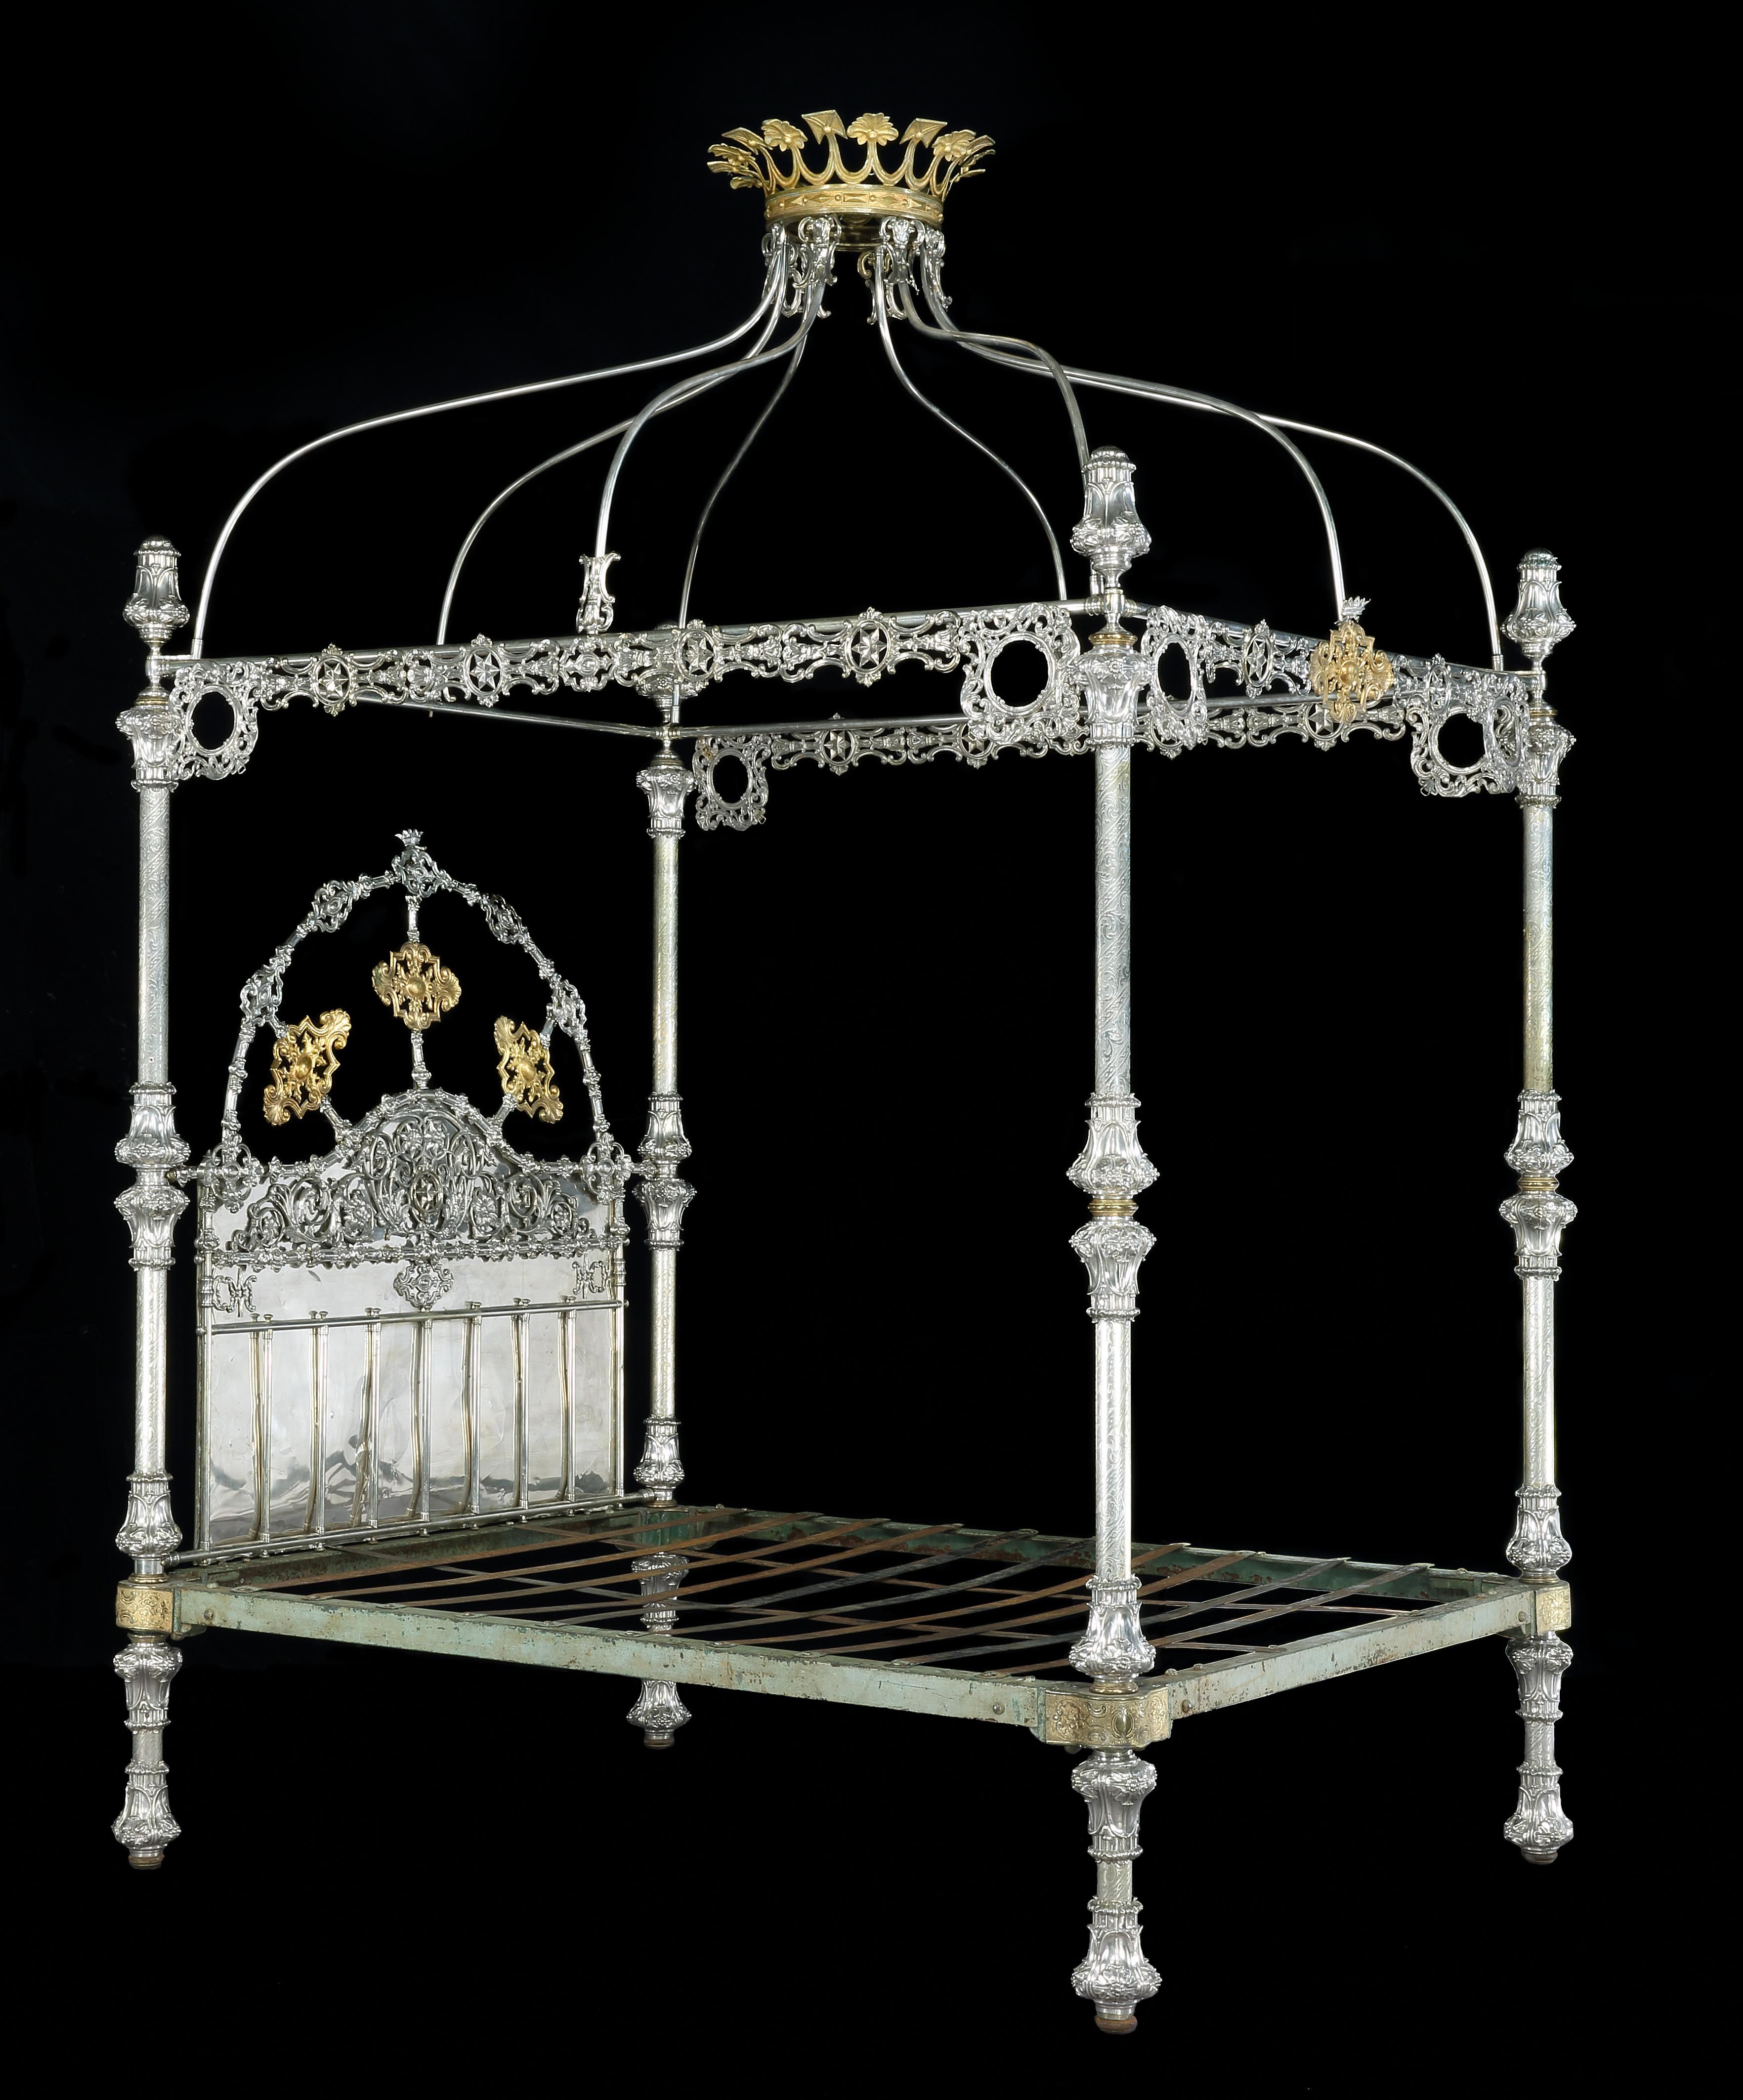 Exceptional Victorian Four Poster Bed by R.W. Winfield